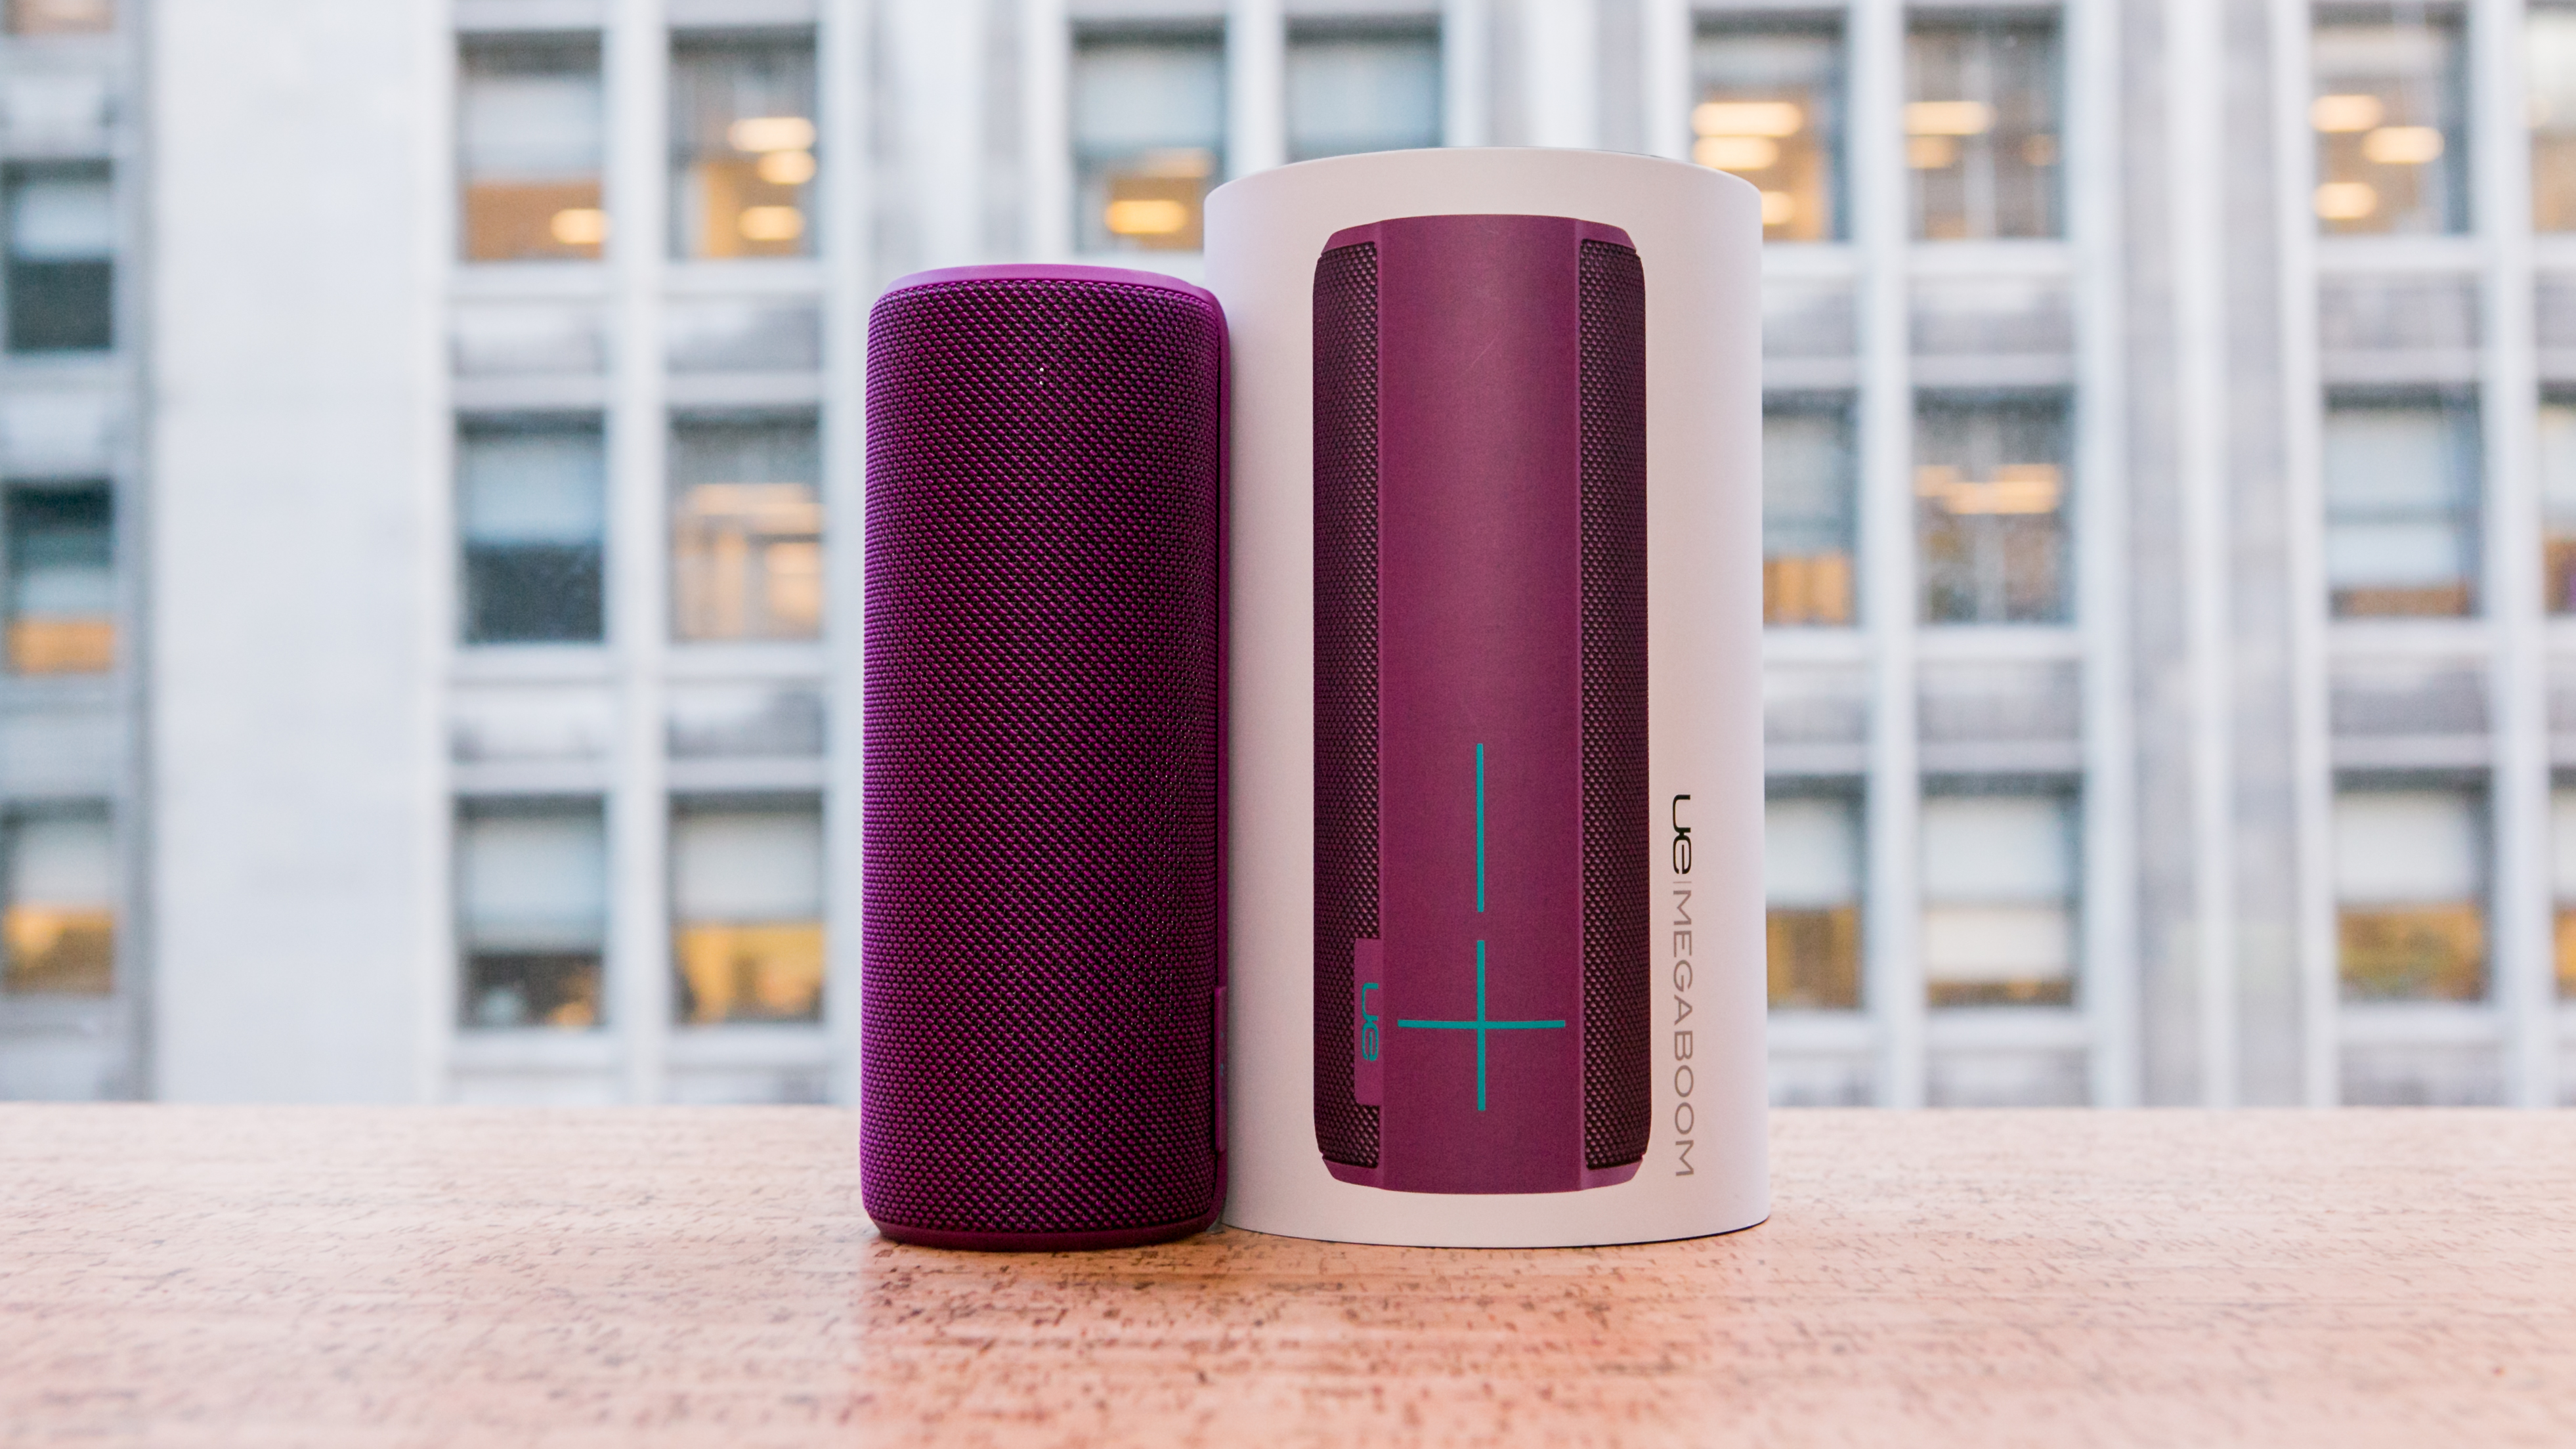 ue-megaboom-product-photos-07.jpg